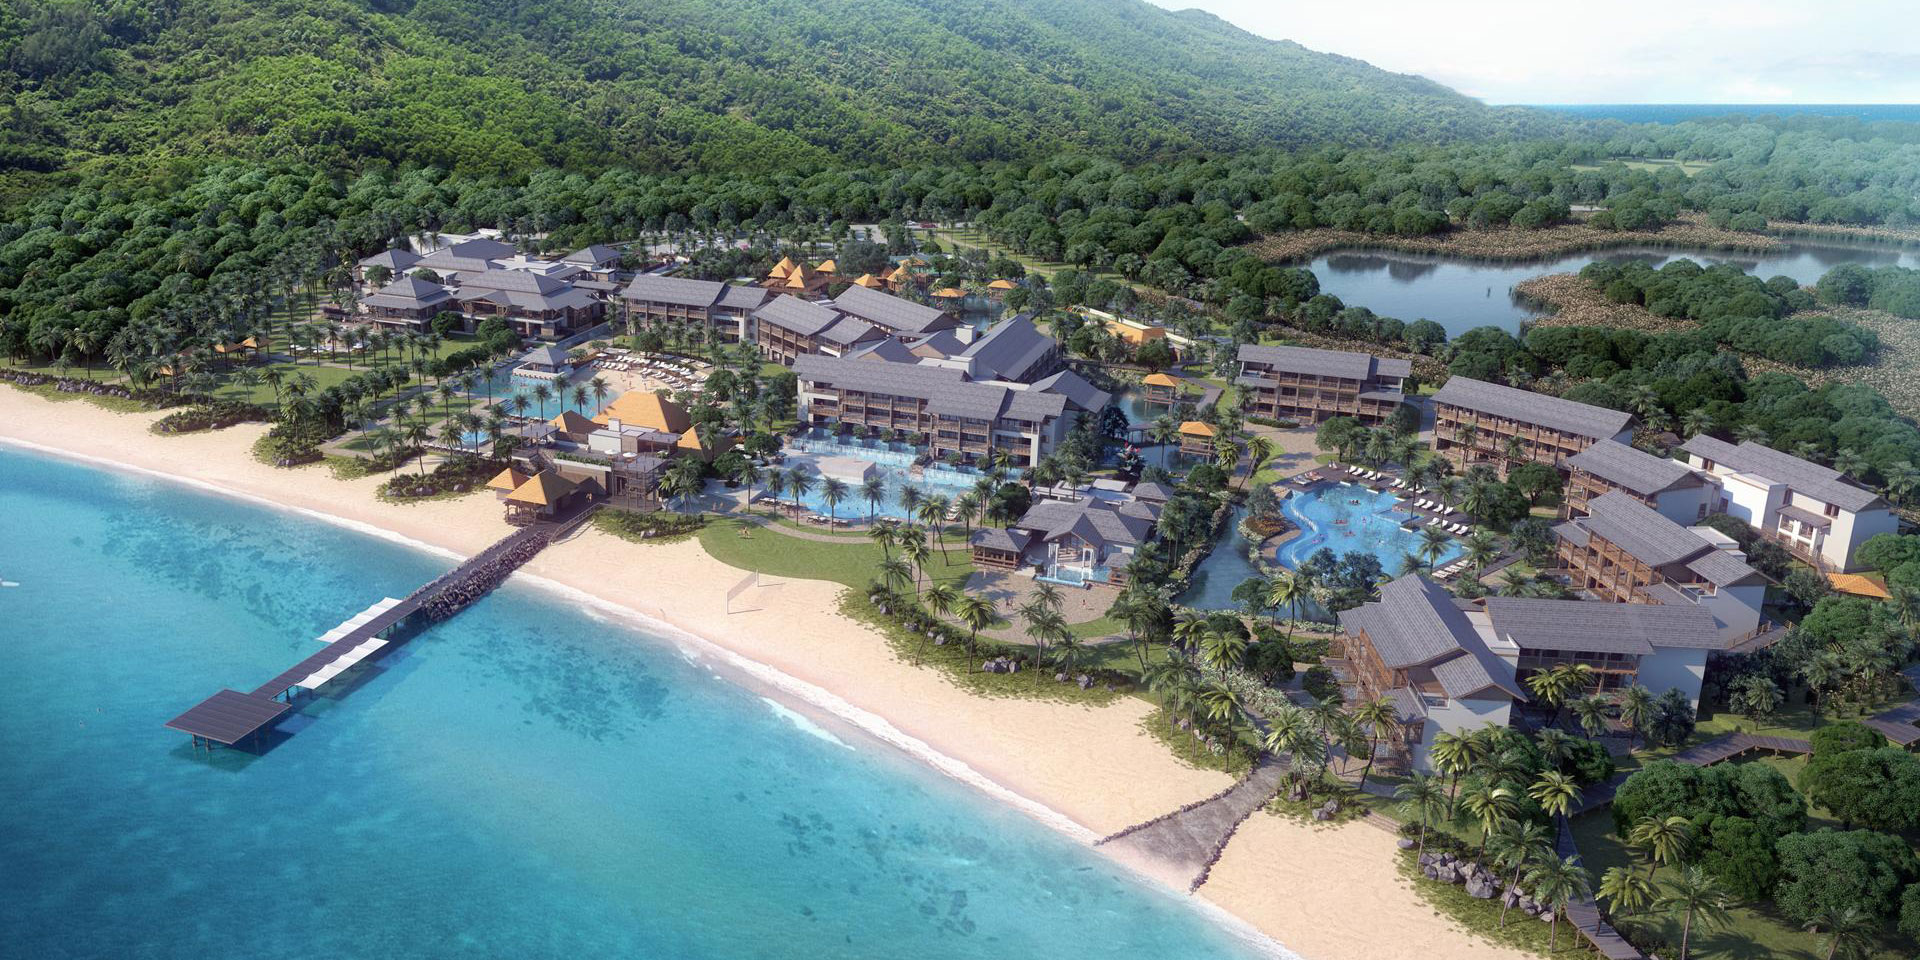 Kempinski hotels expands in Caribbean with new luxury hotel in Dominica